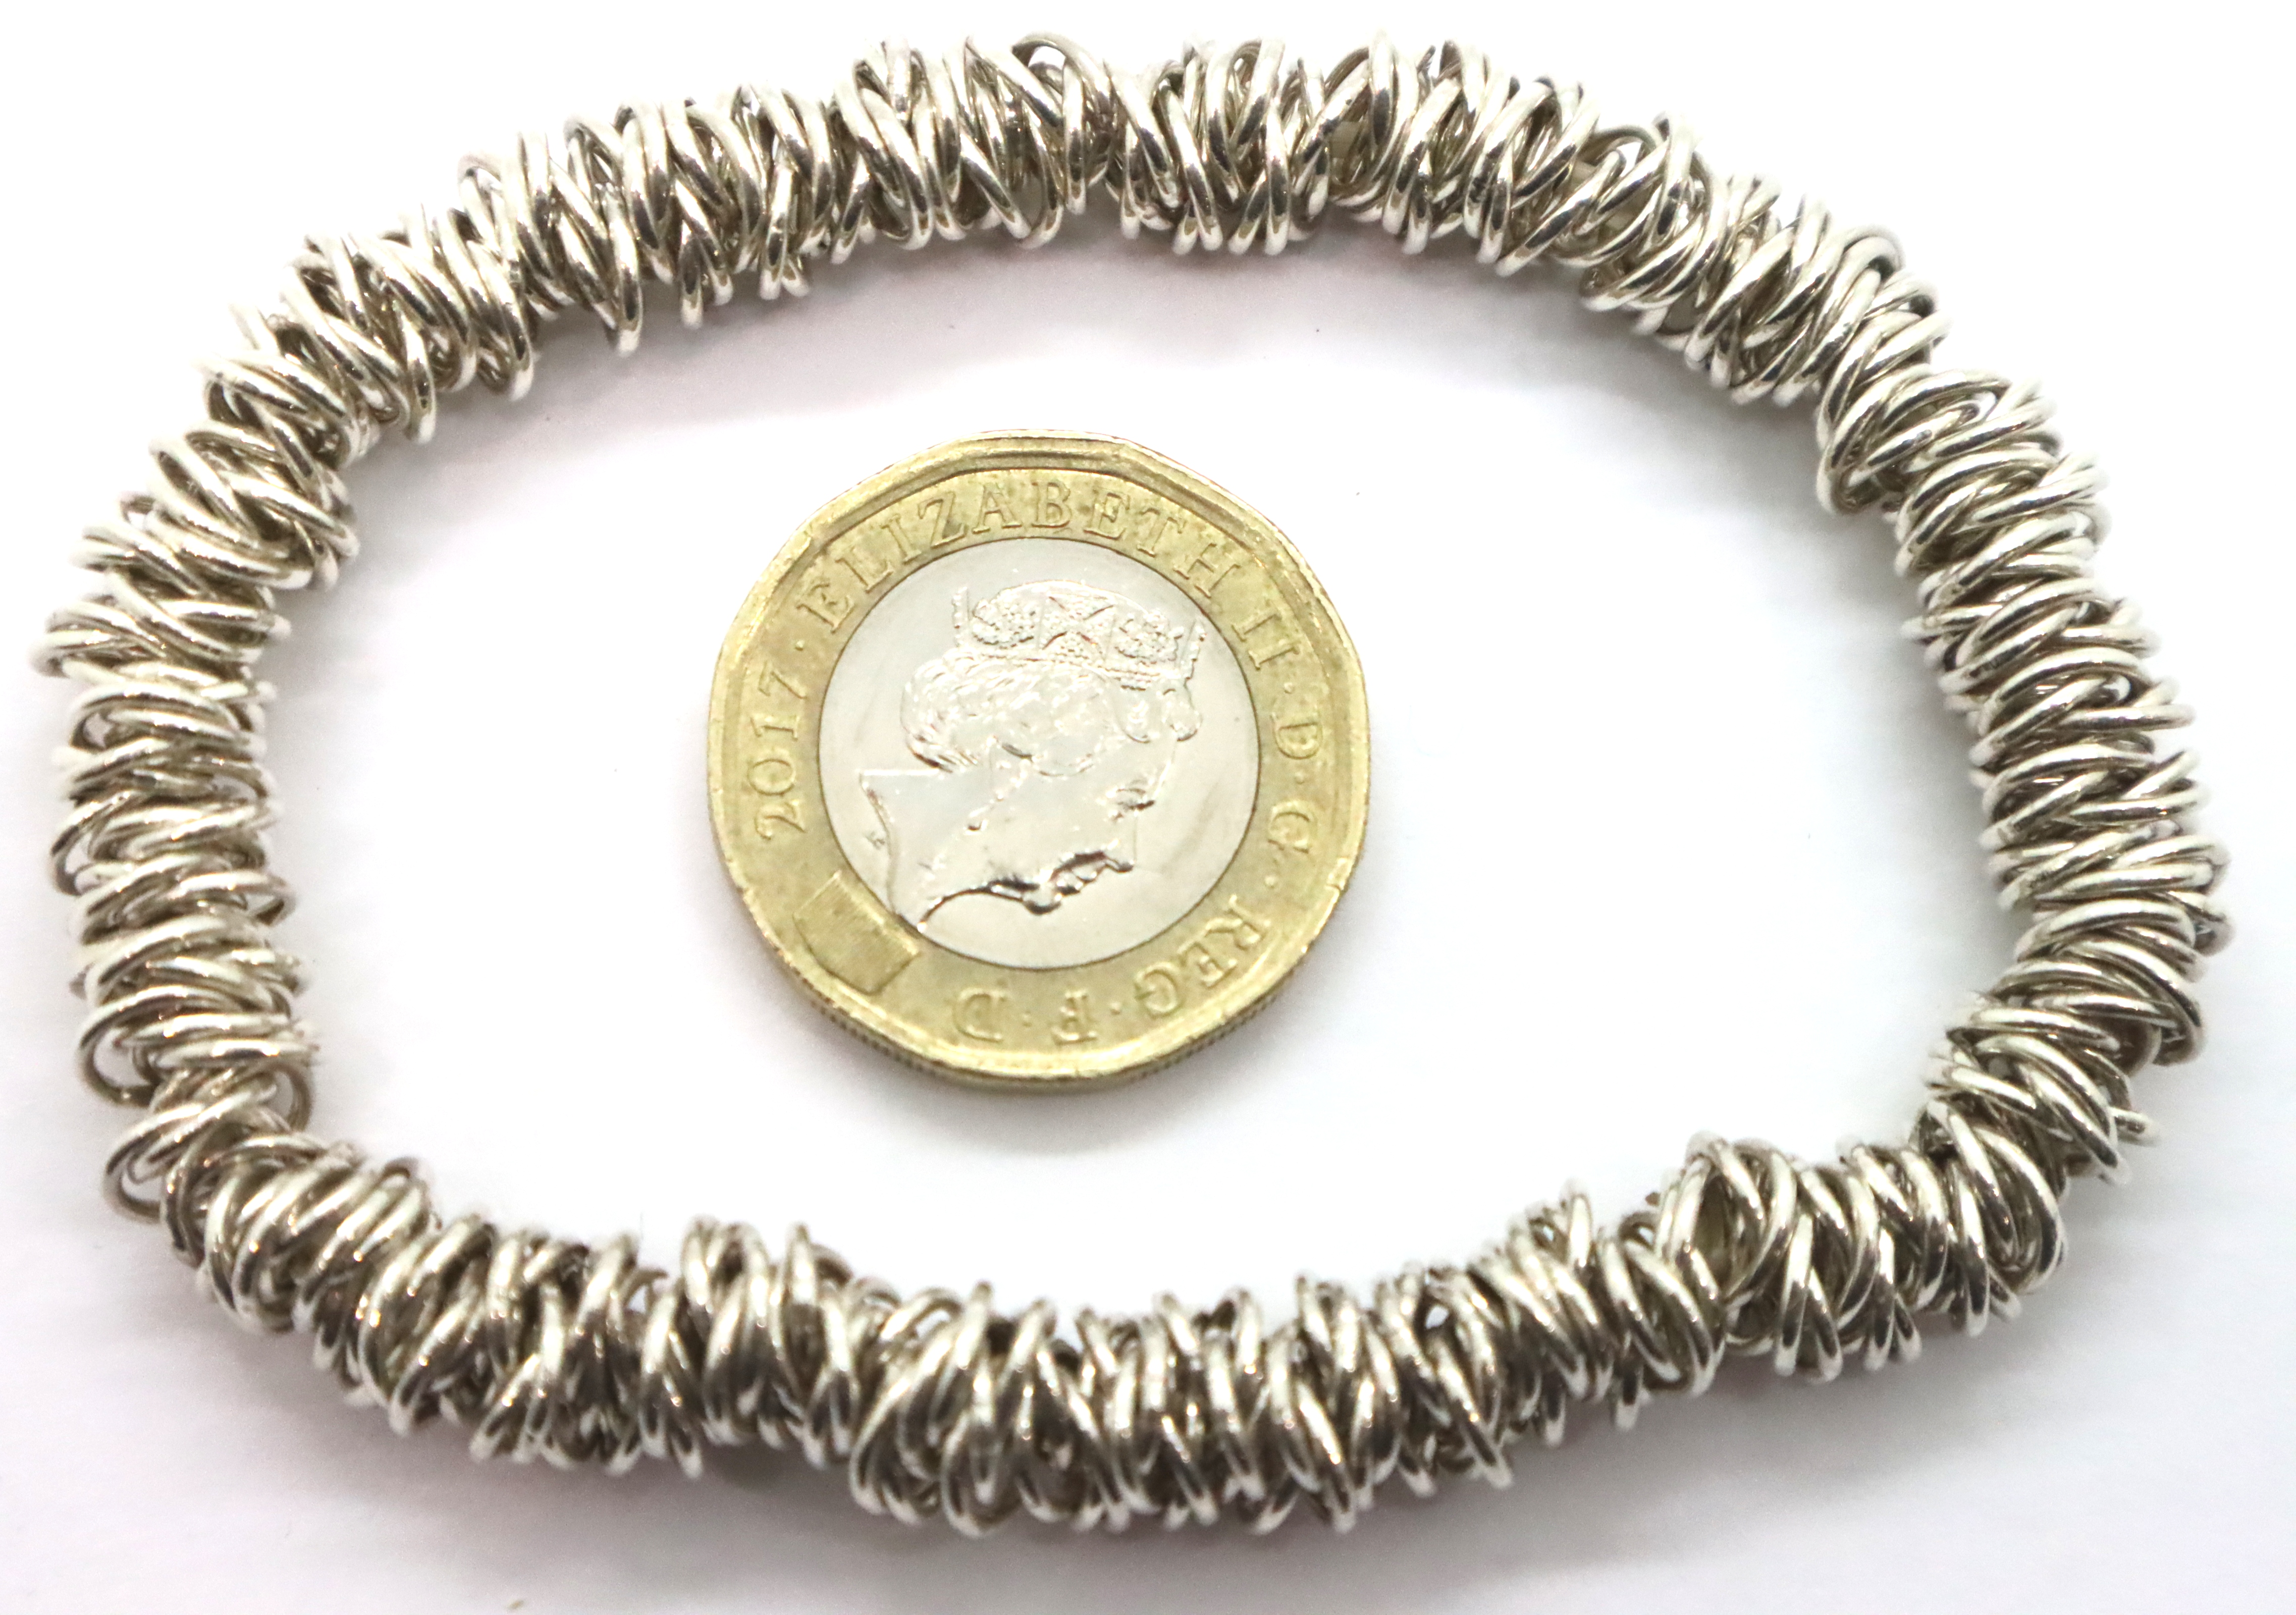 Silver elasticated bracelet. P&P Group 1 (£14+VAT for the first lot and £1+VAT for subsequent lots)